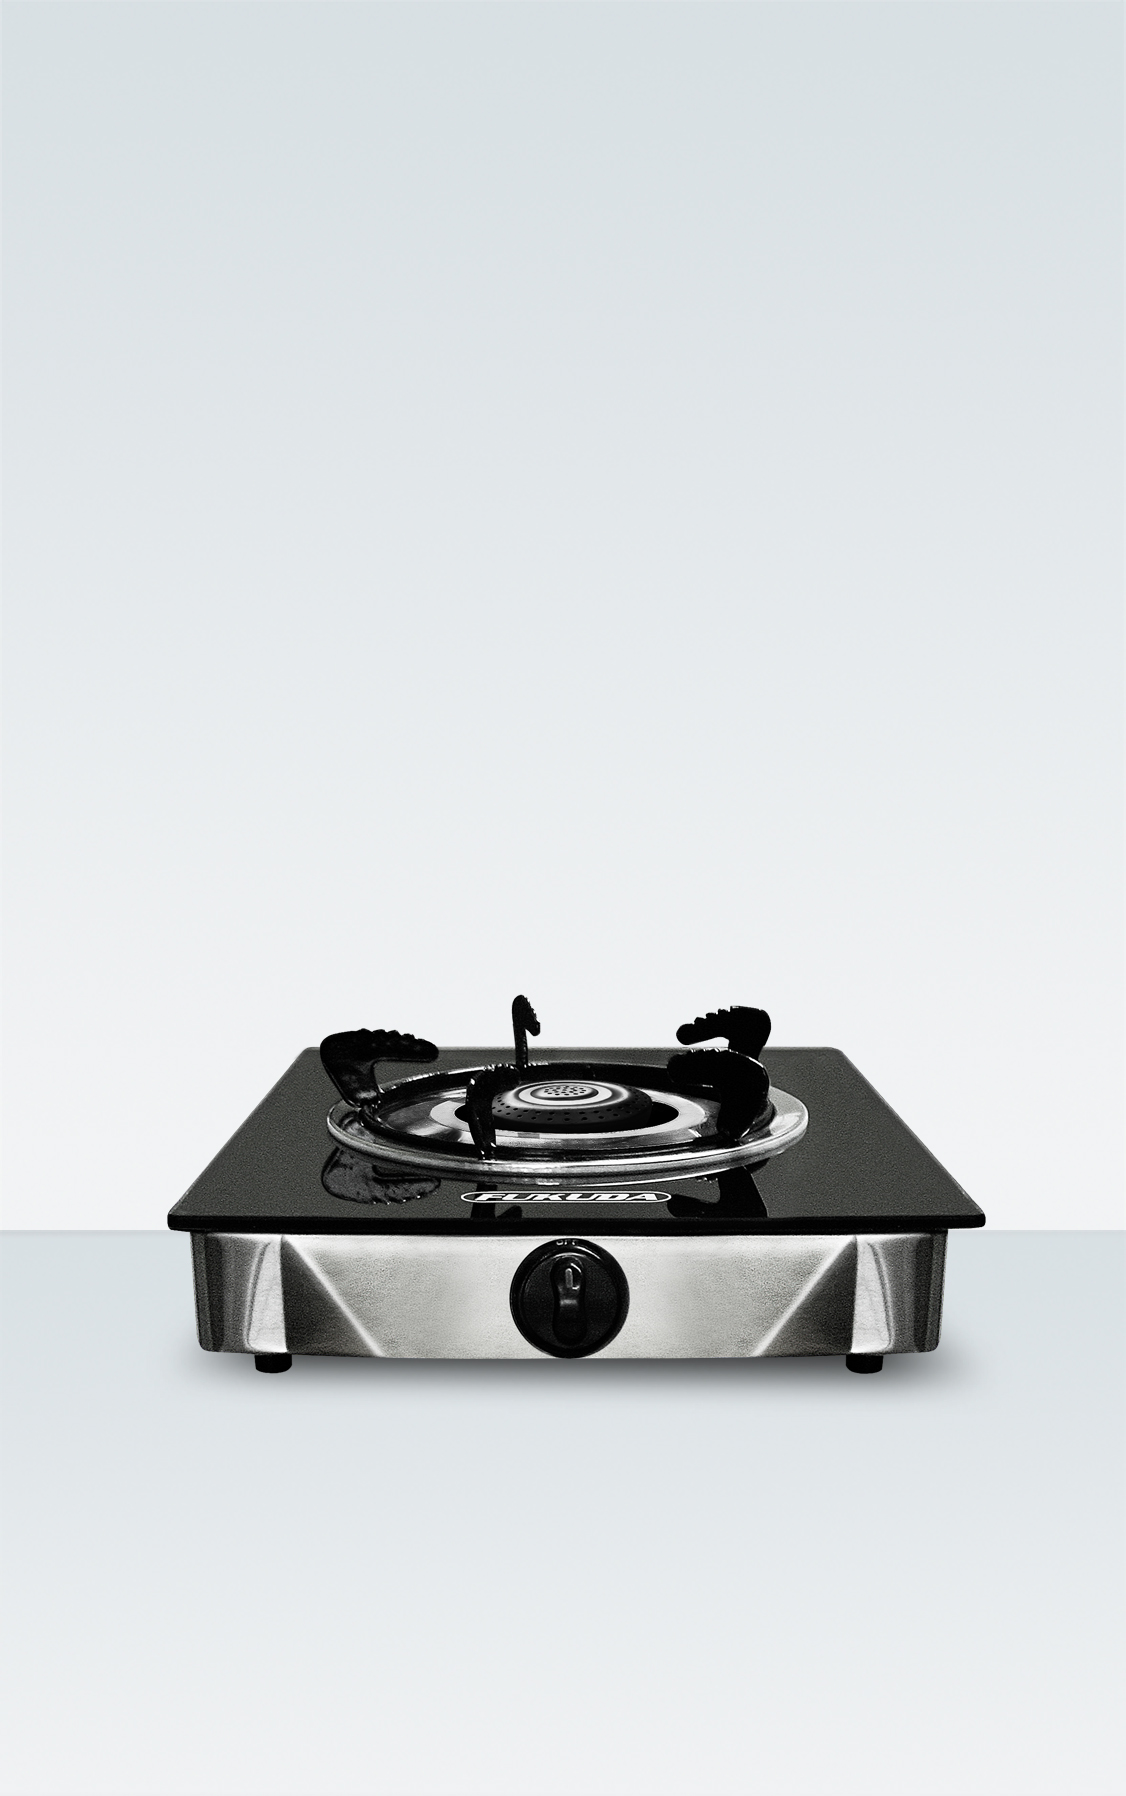 HEAT RESISTANT TEMPERED GLASS TOP SINGLE BURNER GAS STOVE